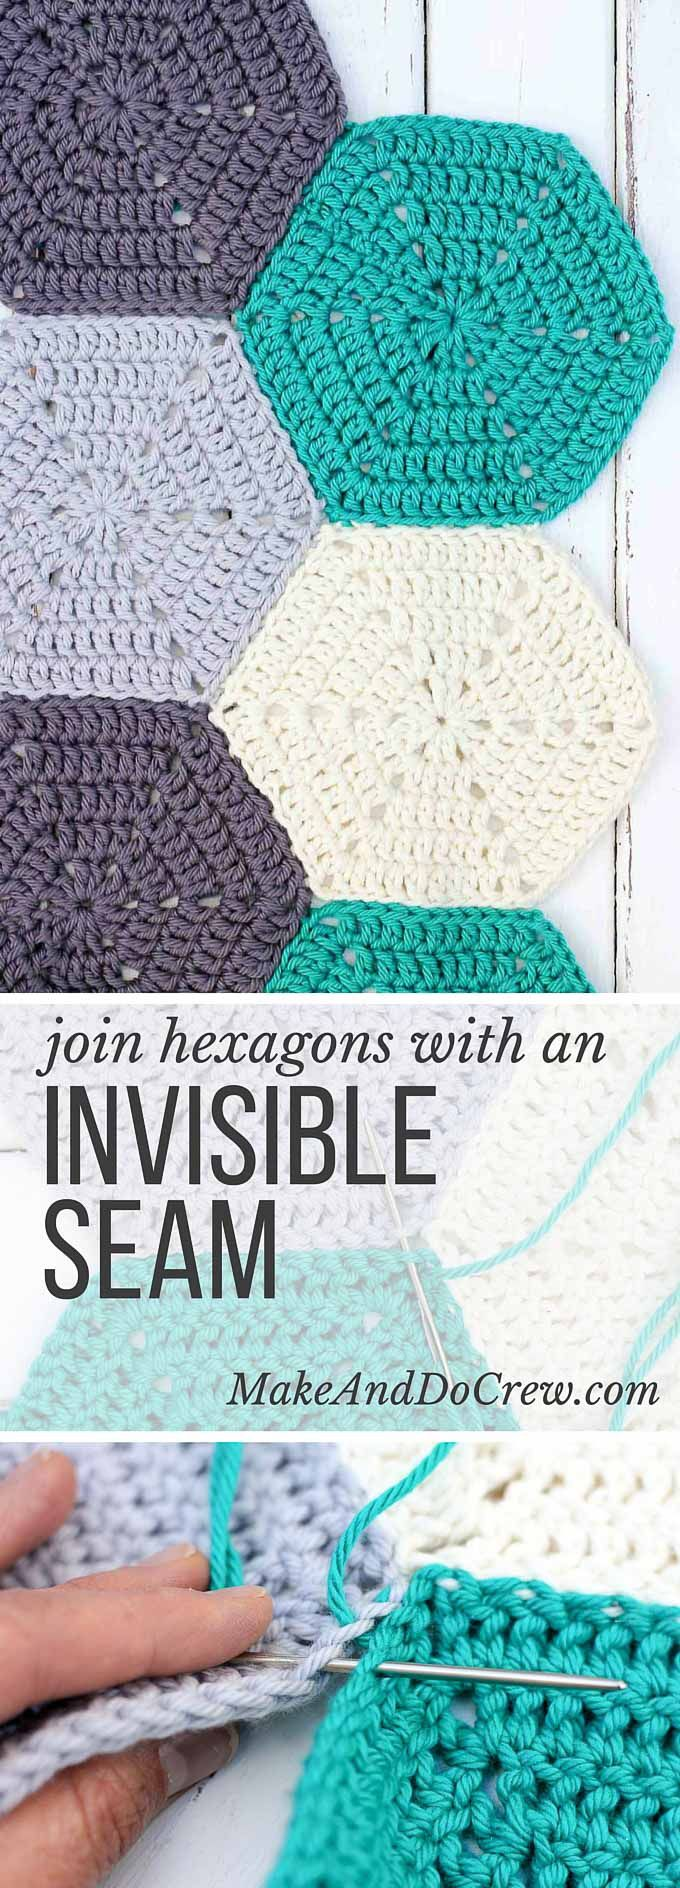 How To Join Crochet Hexagons With an Invisible Seam | Tejido ...